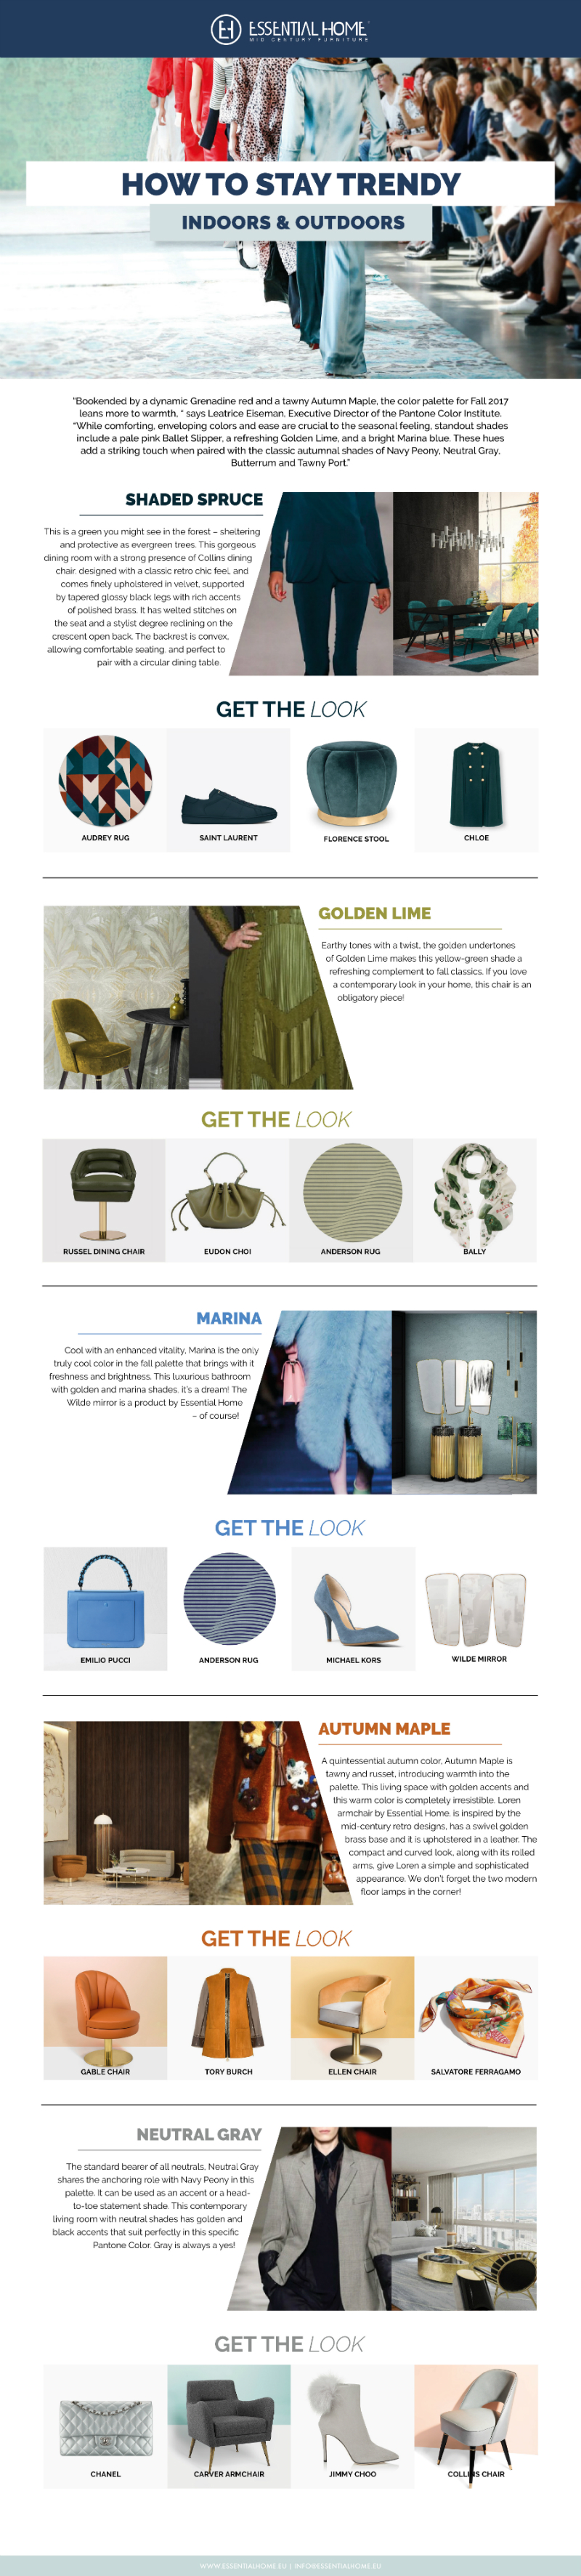 Another Complete Guide to the Best Fall Home Decor and Fashion Trends-Fall Home Decor fall home decor Another Complete Guide to the Best Fall Home Decor and Fashion Trends Another Complete Guide to the Best Fall Home Decor and Fashion Trends info